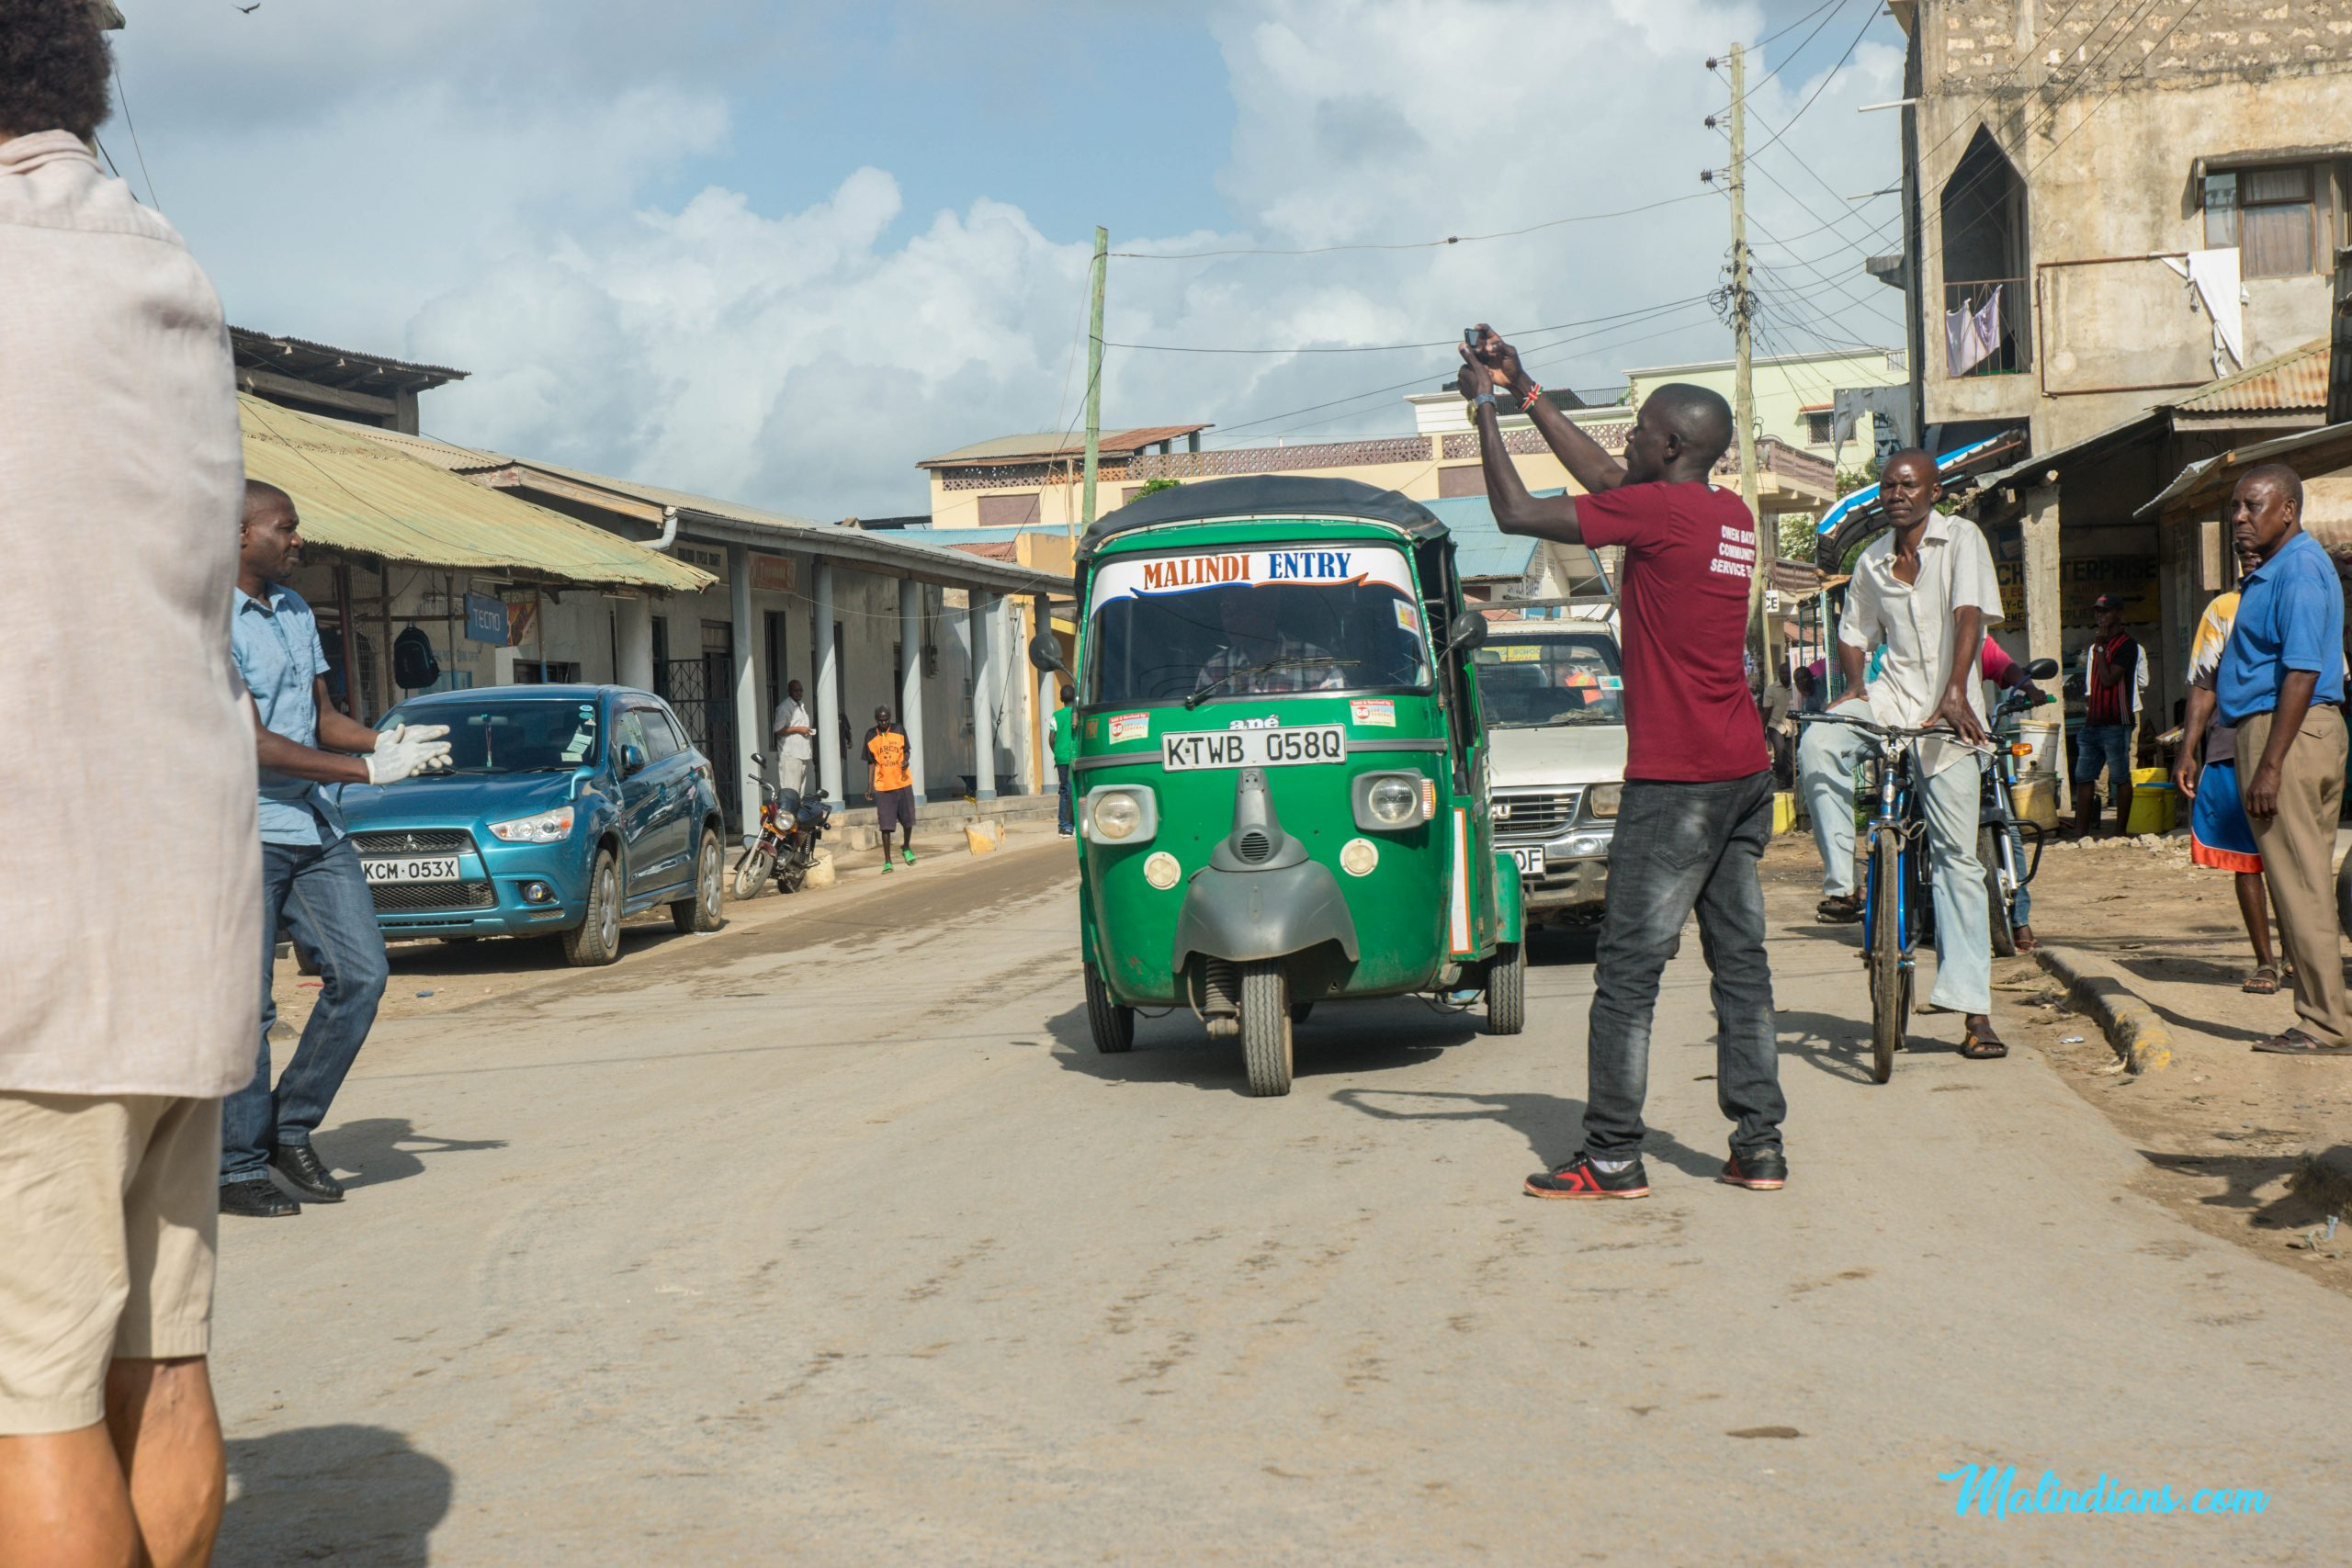 Malindi Town clean up malindians.com 101 scaled - 8 Facebook Pages to Follow About Malindi Town